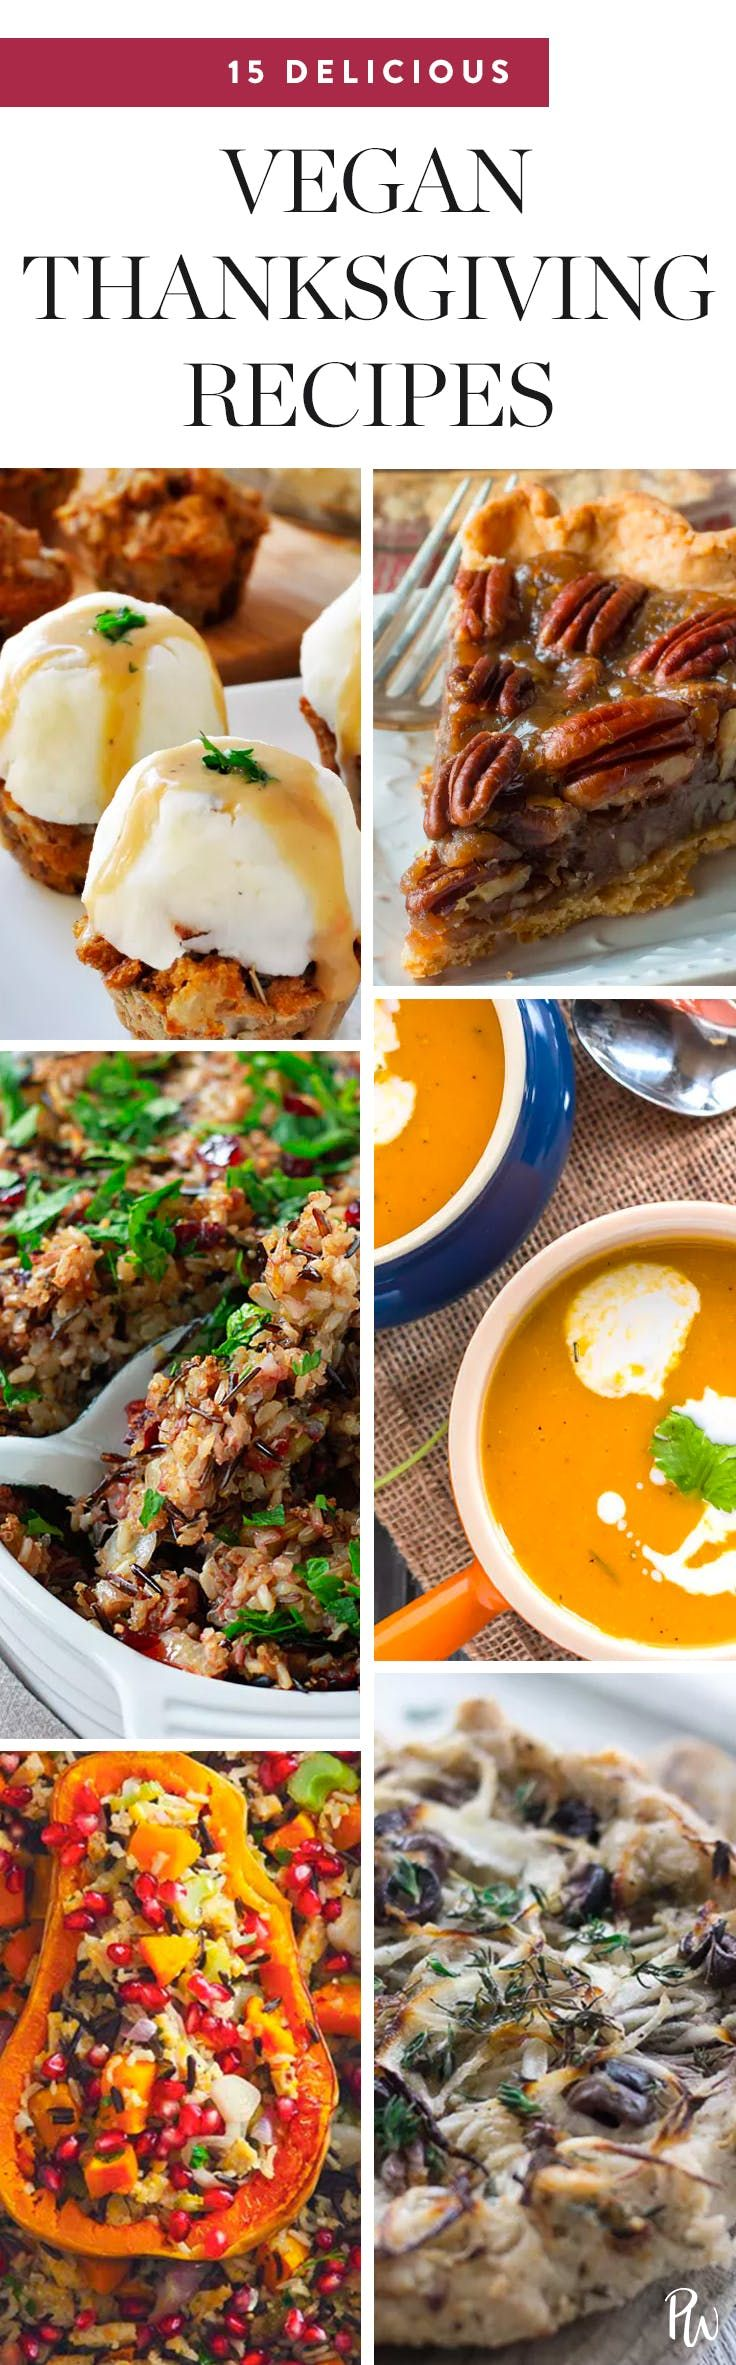 Here are 17 plant-based versions of your favorite Thanksgiving classics to satisfy thevegans at your table. #veganthanksgivingrecipes #thanksgivingrecipes #recipes #veganrecipes #vegan